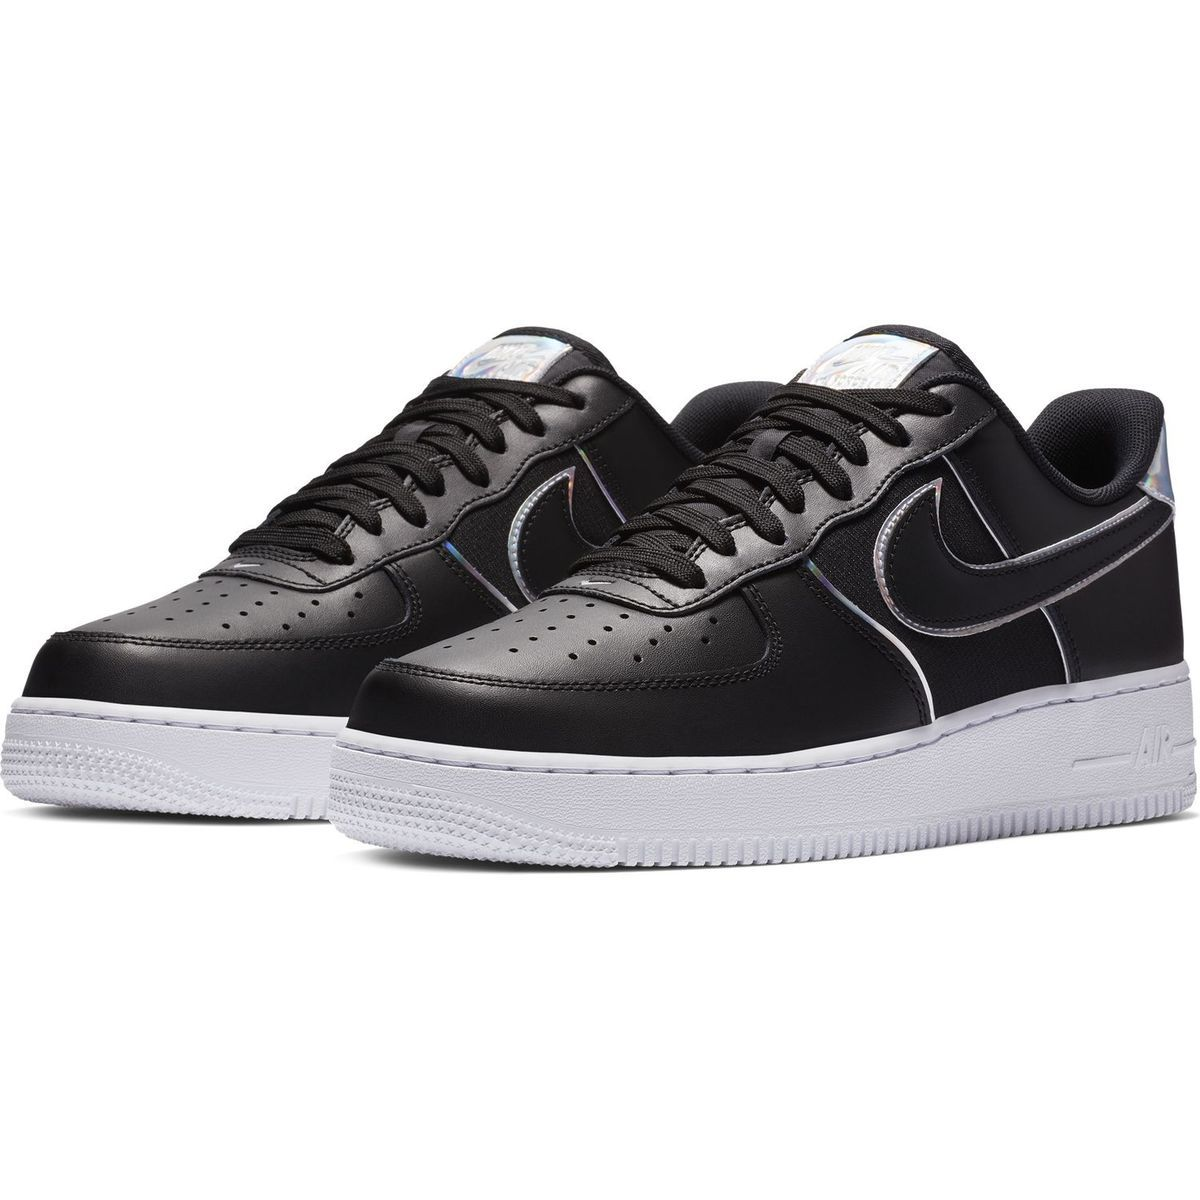 '07 Air Force Taille40;41;42;42 At6147 4 12;44 Baskets Lv8 1 m0Nv8Own